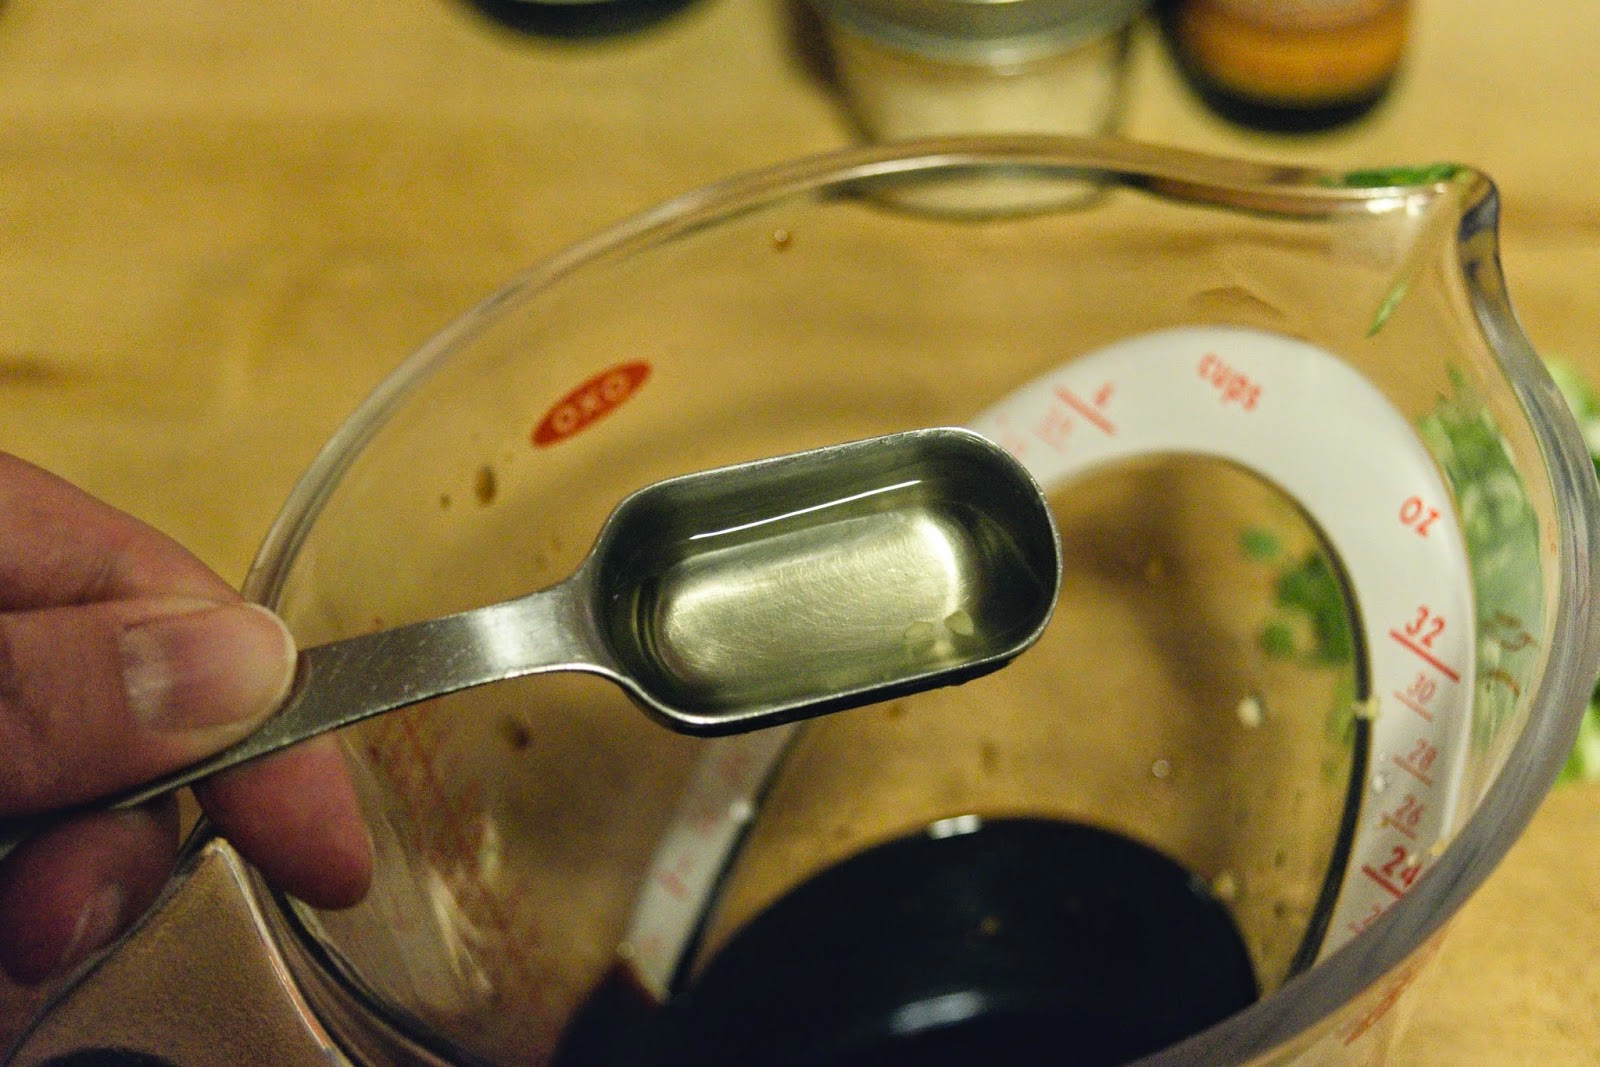 White rice vinegar being added to the sauce in the measuring cup.